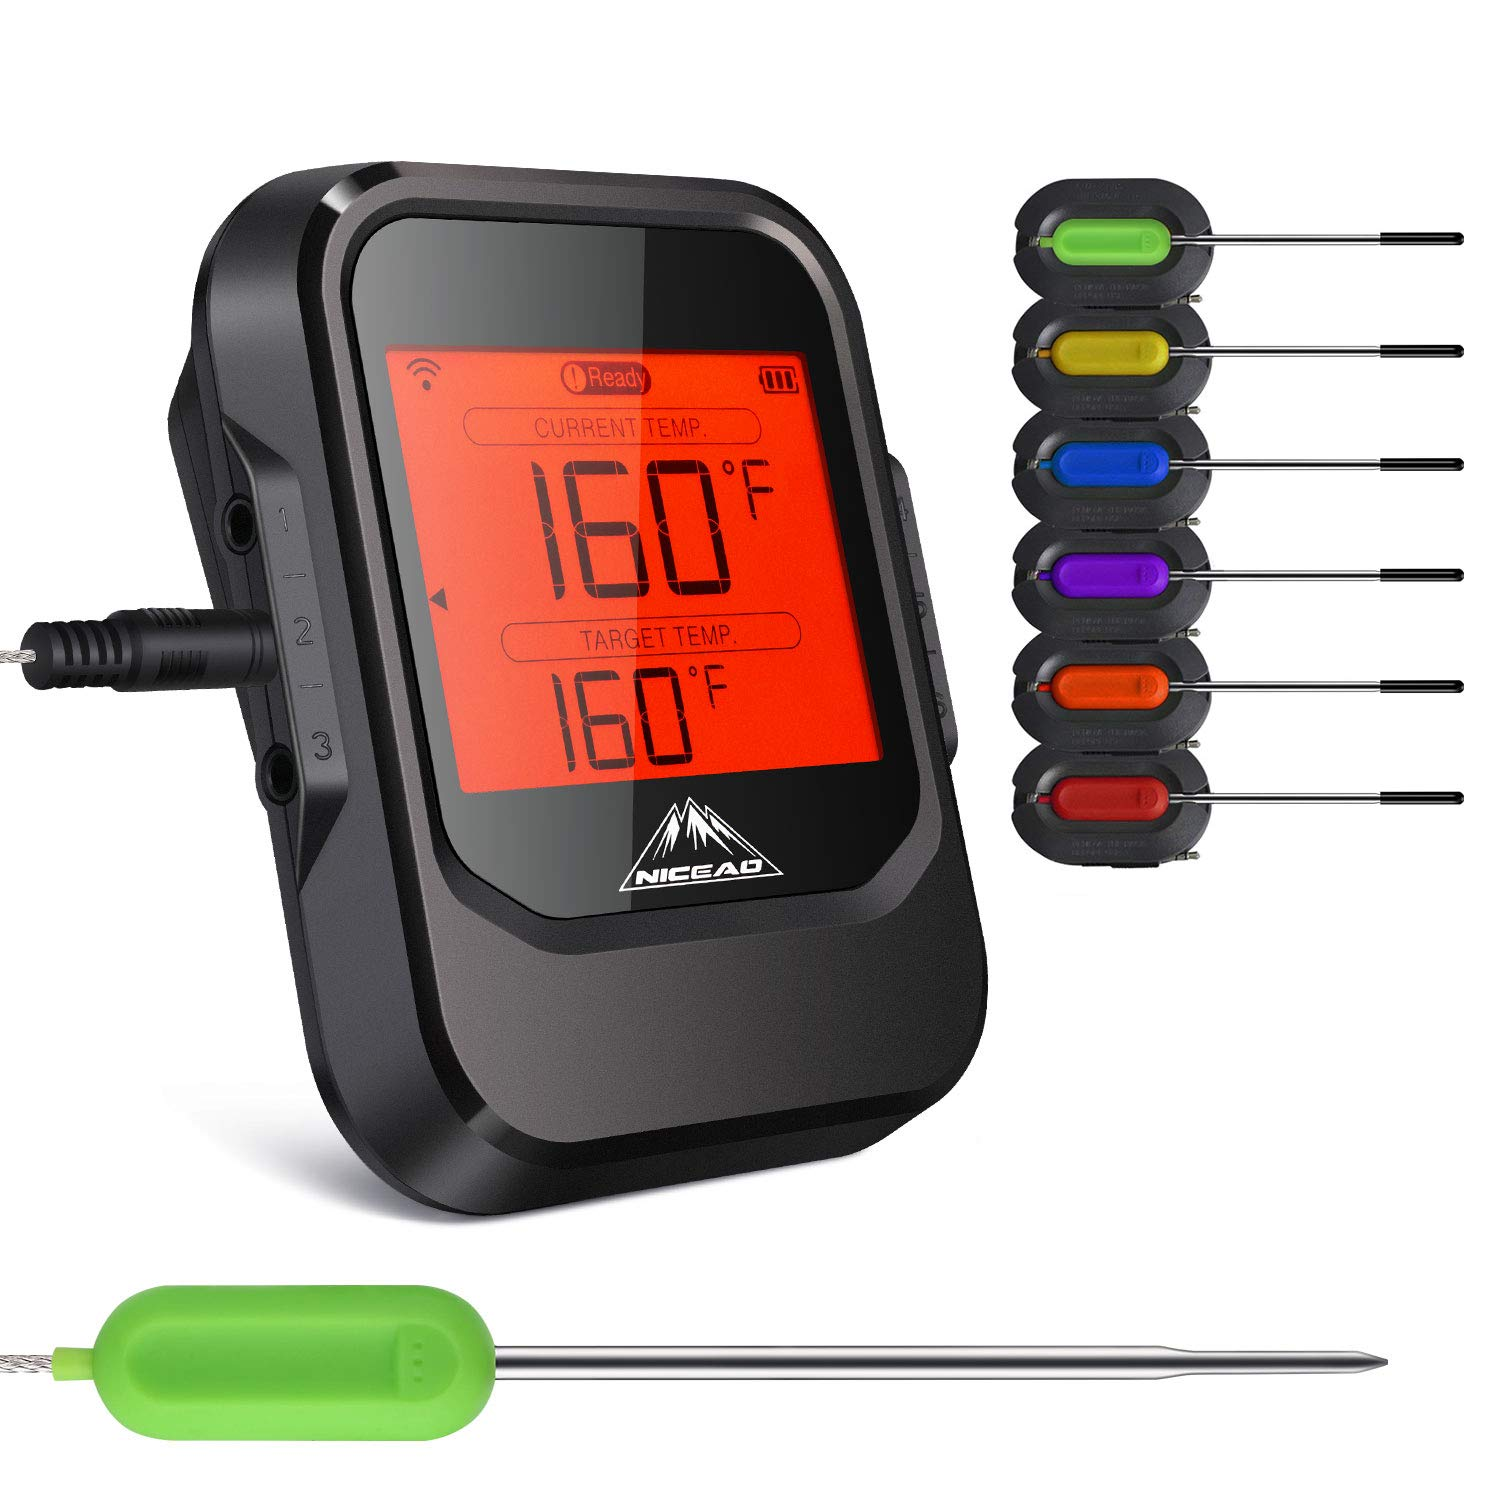 NICEAO Wireless Meat Thermometer, Digital Cooking Thermometer with 6 Stainless Steel Step-Down Probe Bluetooth BBQ Thermometer with App Control Alarm Monitor for Grill Smoker, Kitchen Cooking Oven Madisun